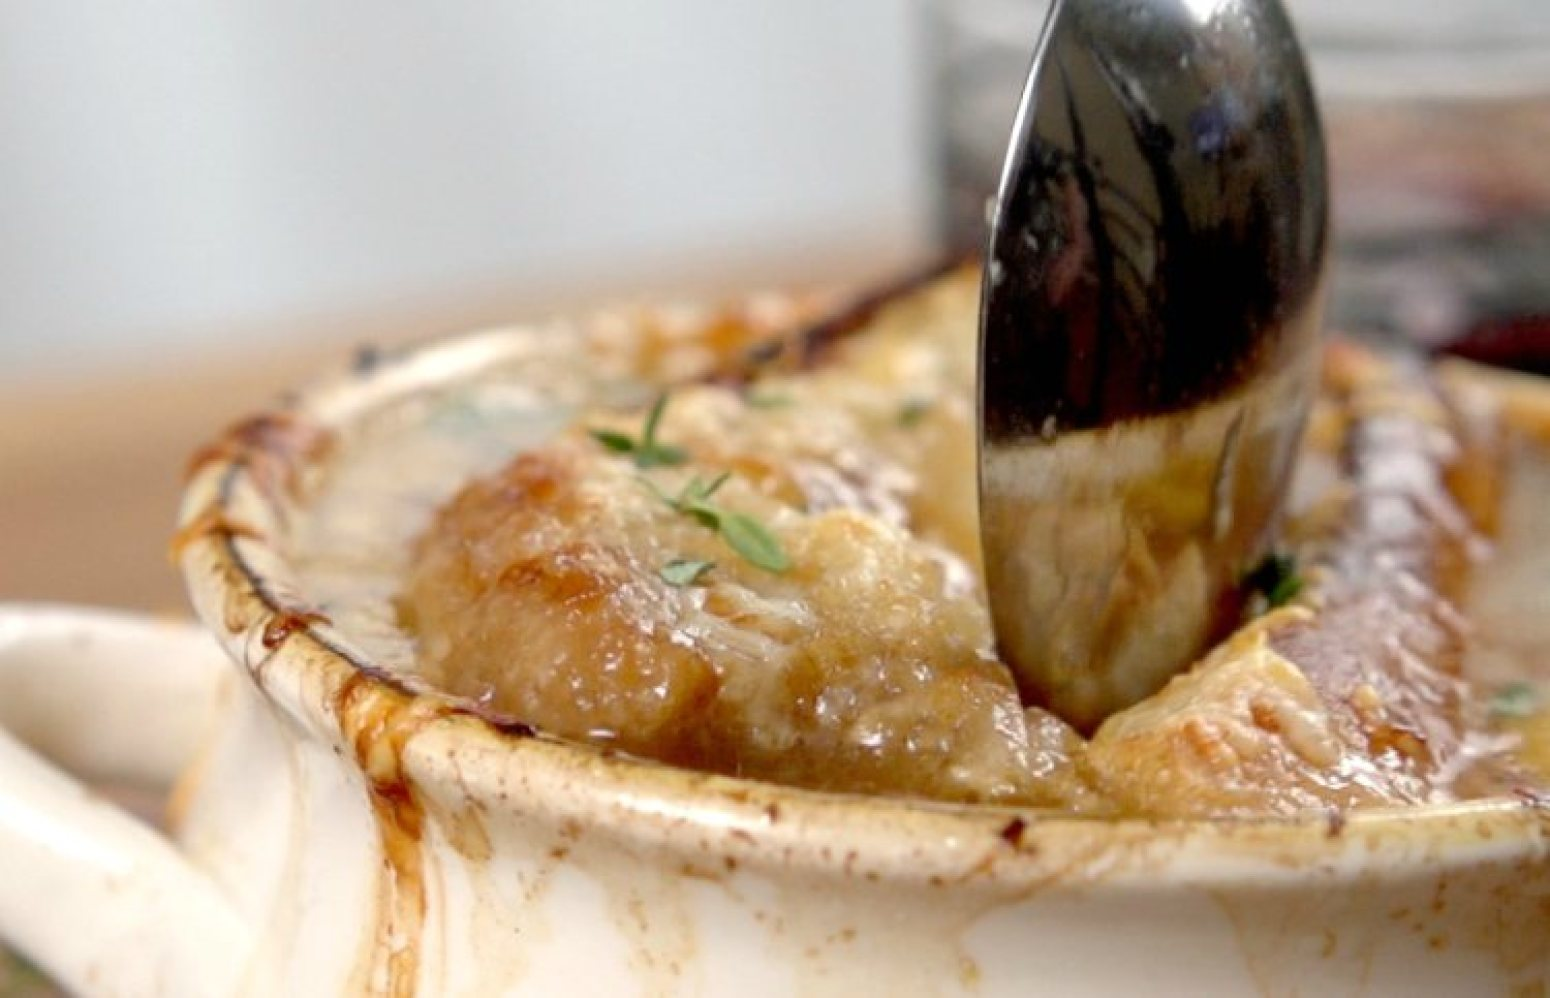 CROCKPOT FRENCH ONION SOUP Recipe 9 | Just A Pinch Recipes